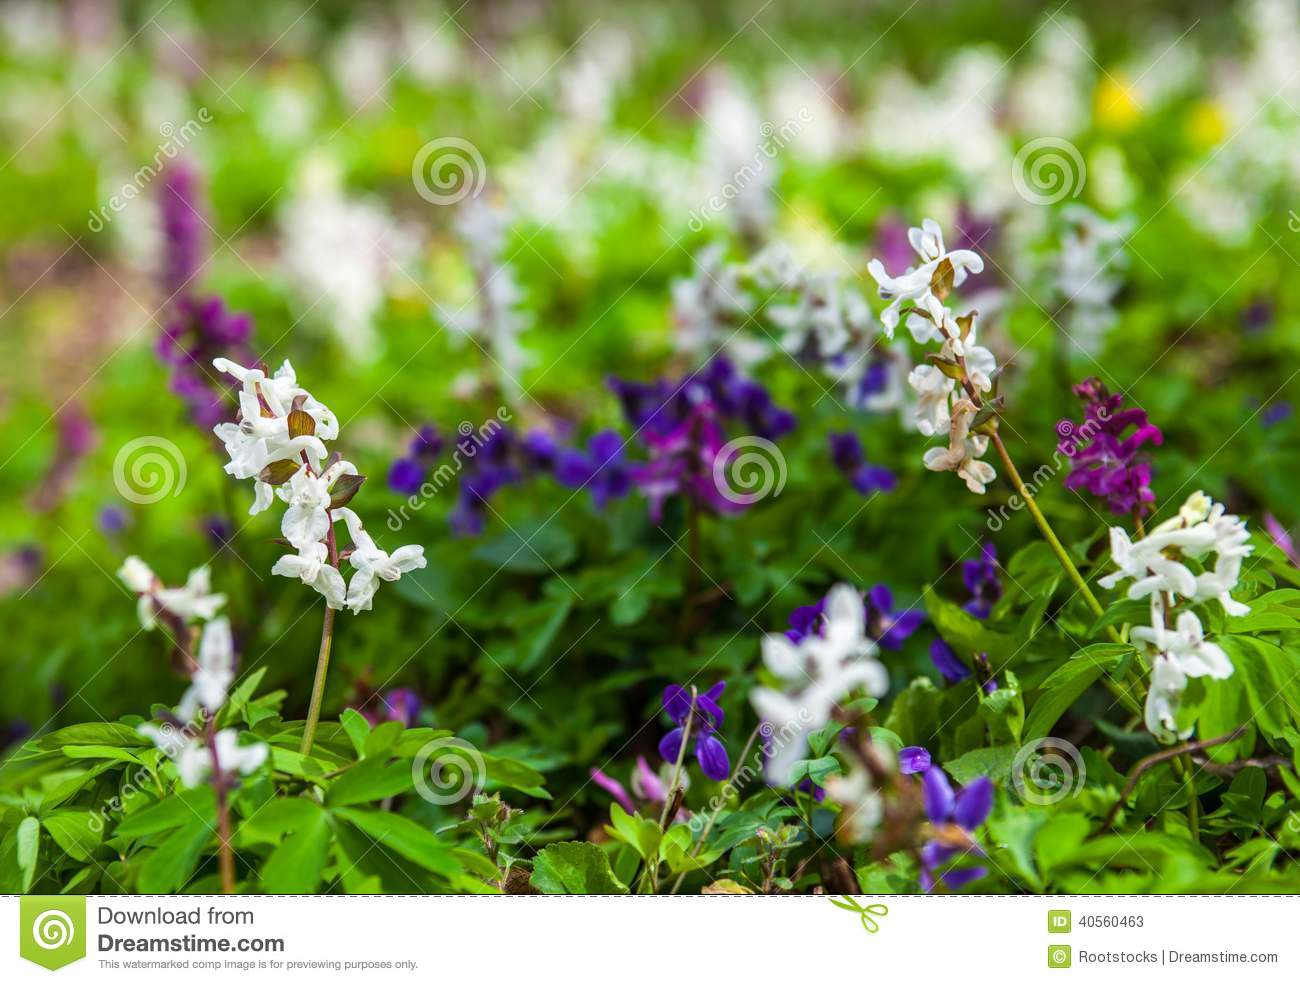 Meadow with corydalis flowers of different colors stock for What makes flowers different colors